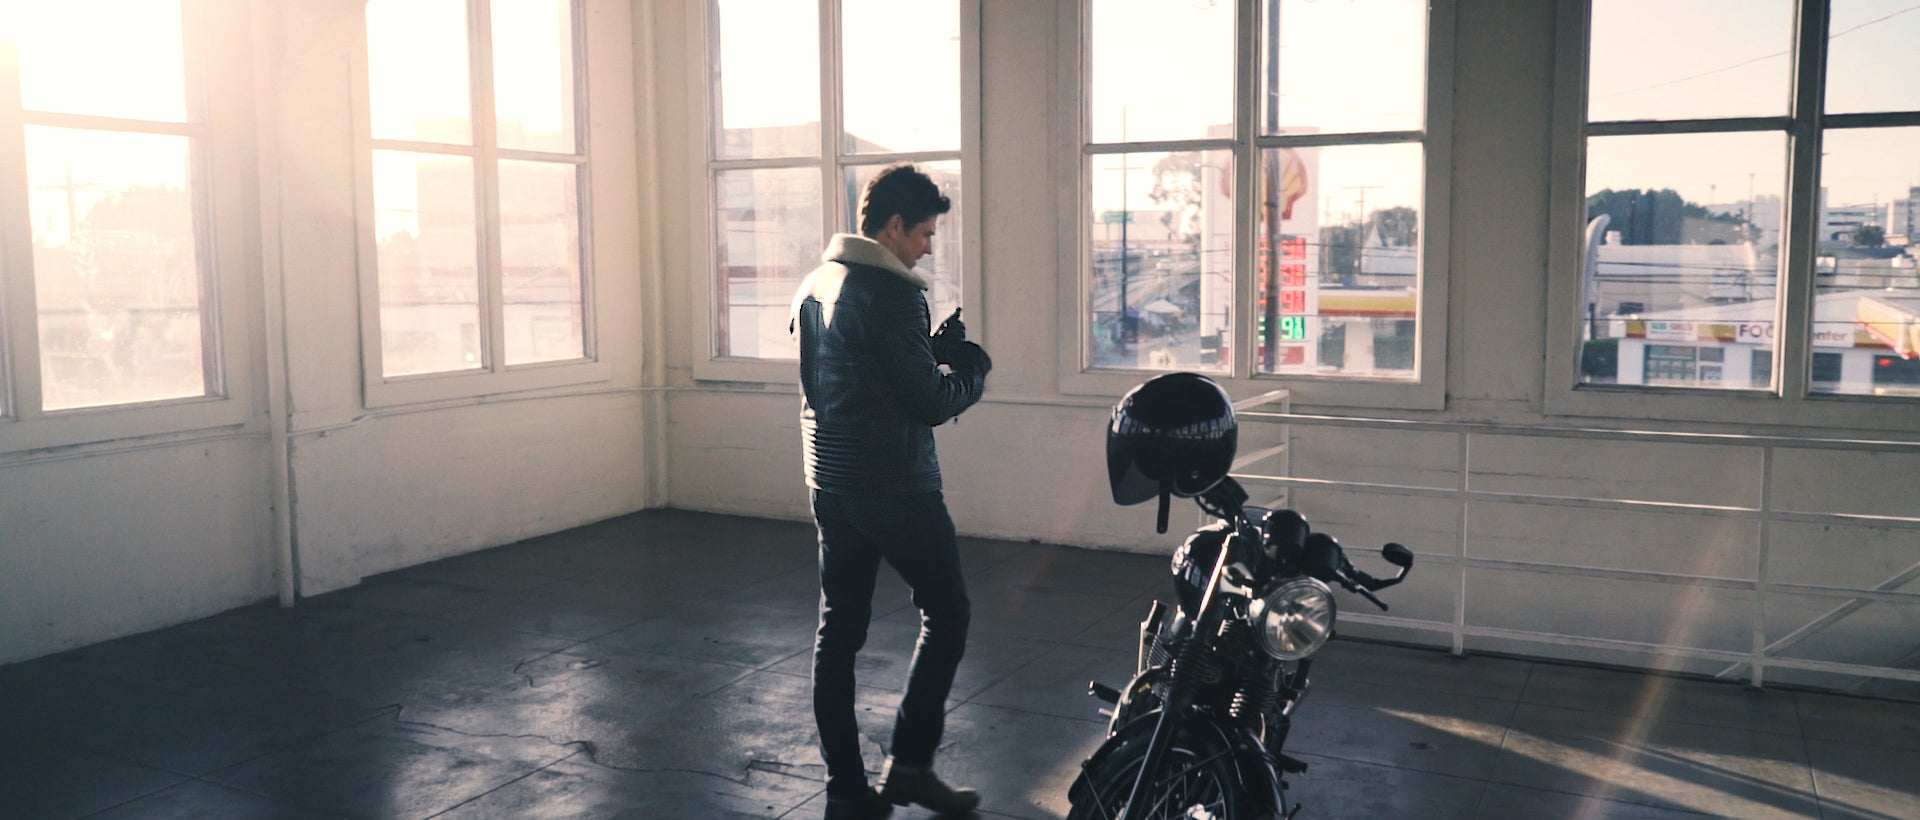 the cafe racer classic motorcycle jacket vktre moto co.